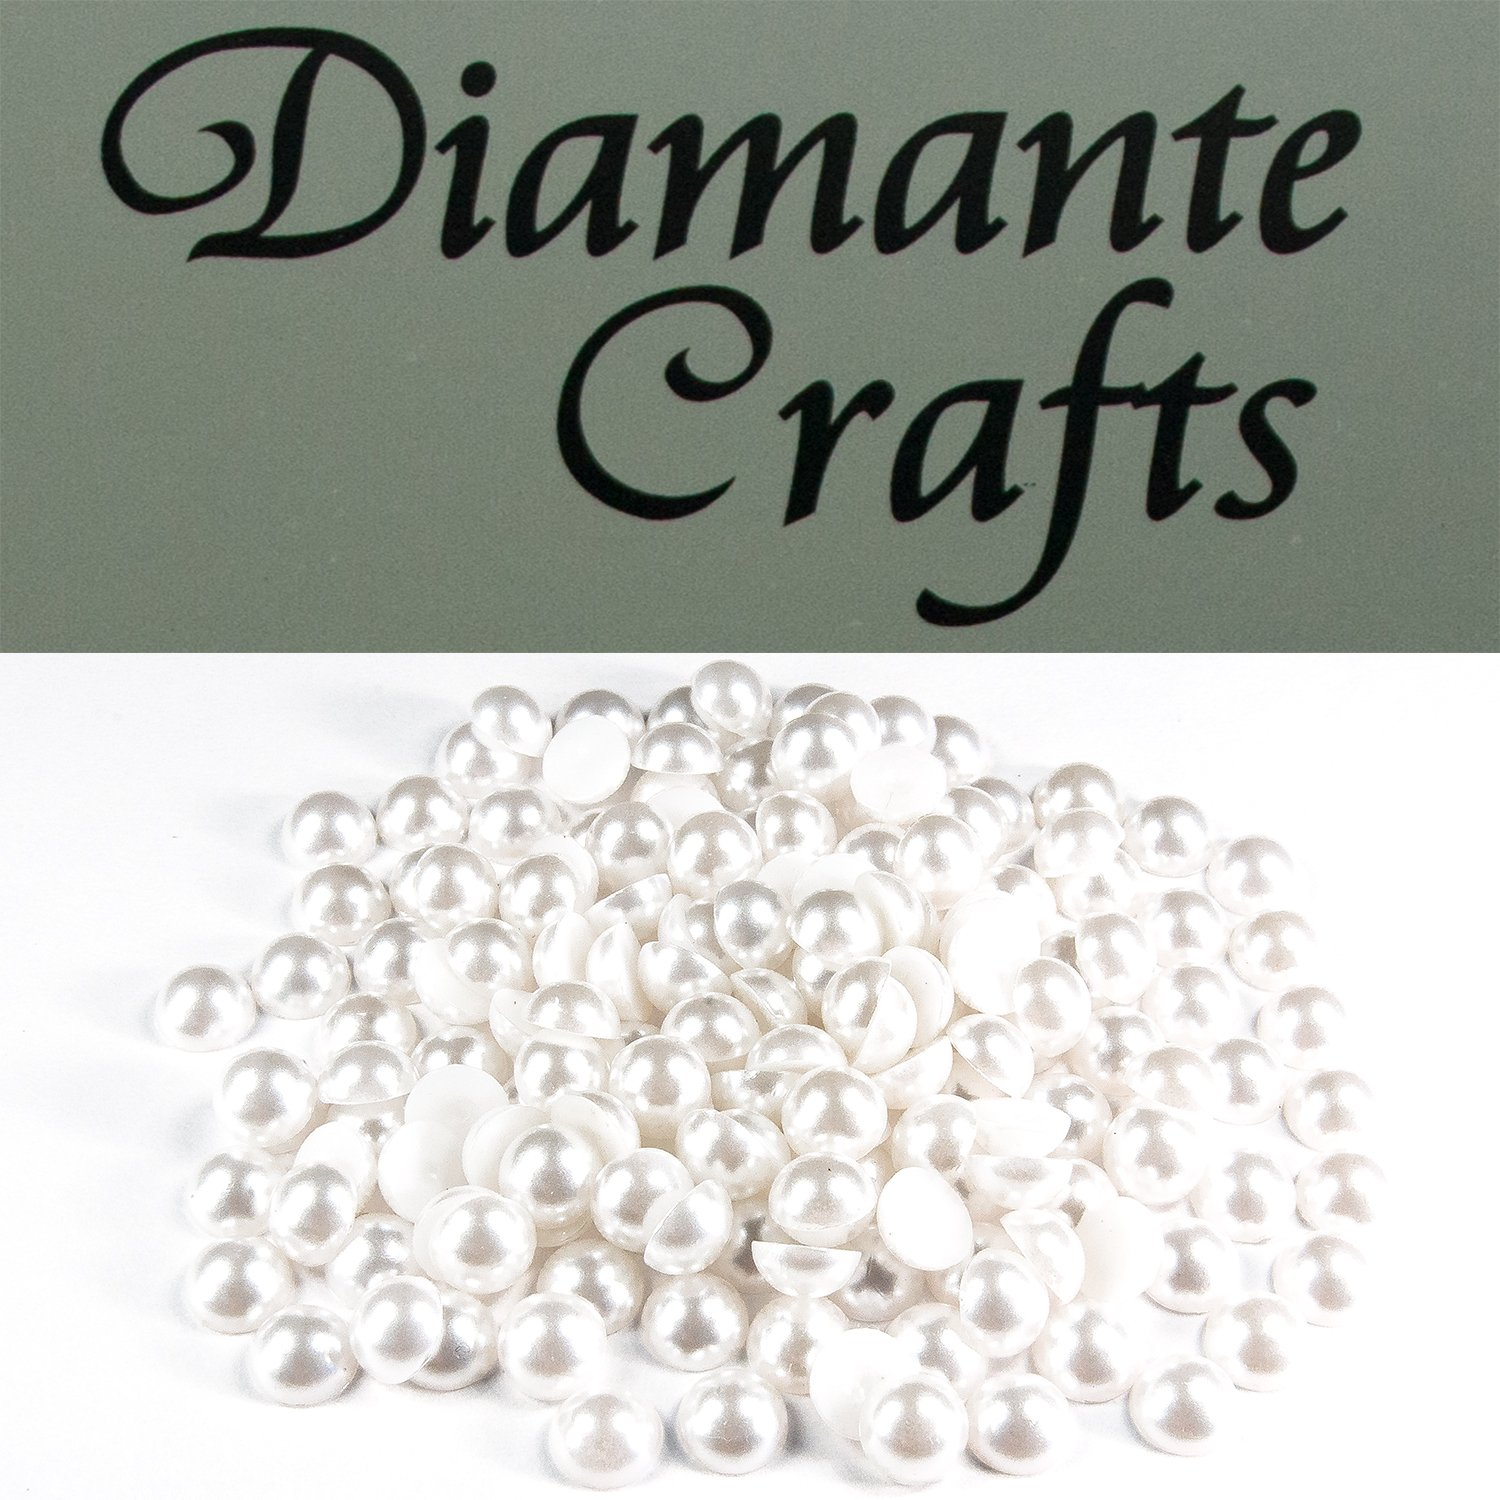 200 x 7mm White Round Pearls Loose Flat Back Rhinestone Gems created exclusively for Diamante Crafts